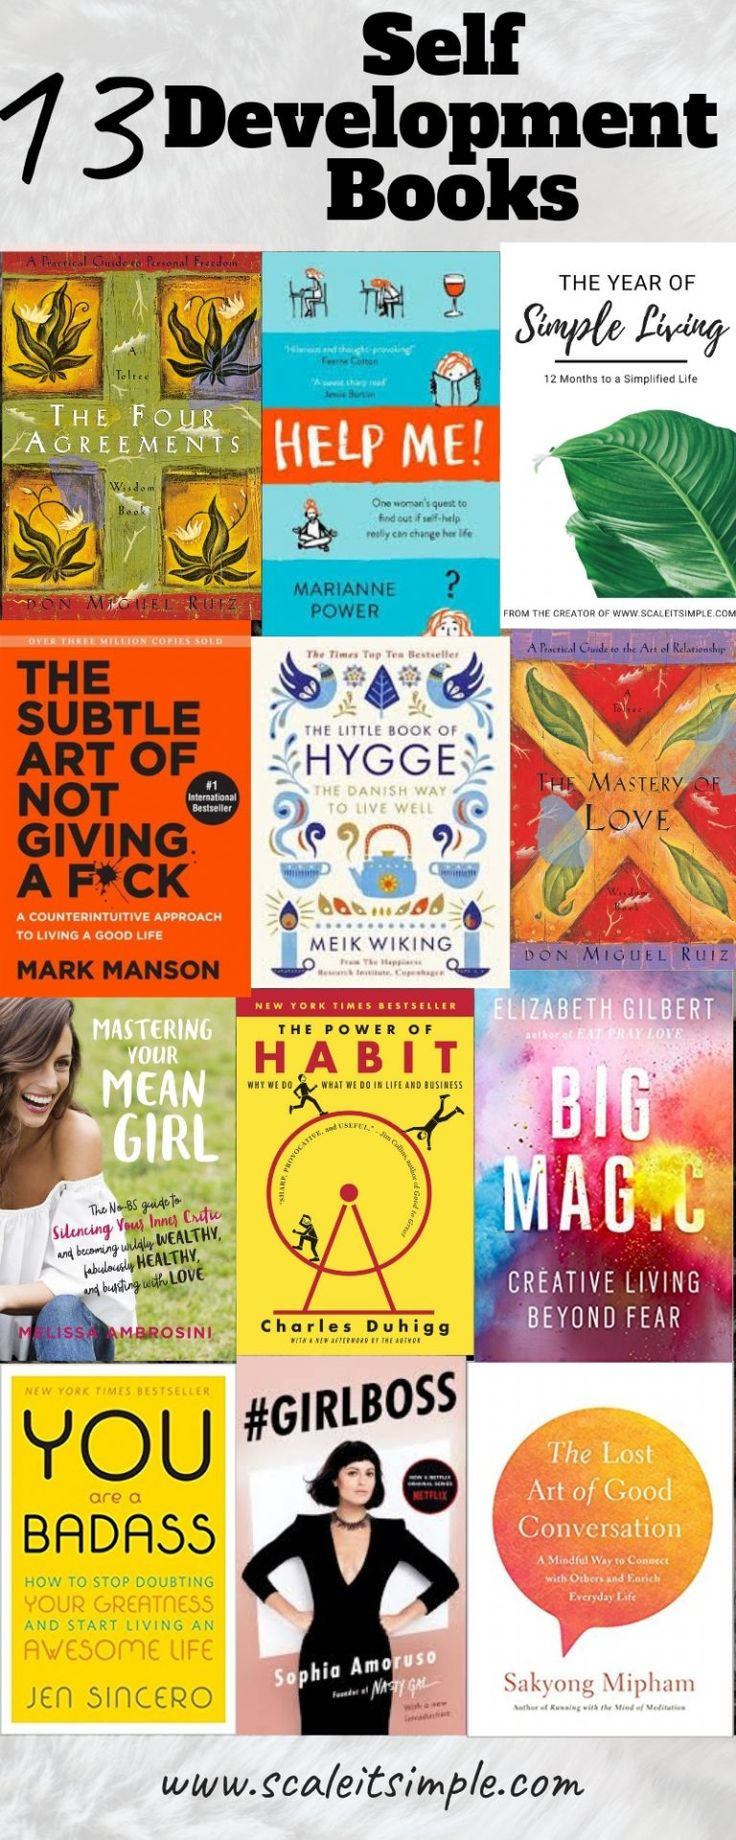 13 Self Development Books Everyone Should Read Once – ScaleitSimple - - Self-development is something that everyone can benefit from not just those going through a hard time. Making these self-development books helpful for all. Little Books, Good Books, Books To Read, My Books, Teen Books, Pranayama, Plymouth, Mantra, Hygge Book